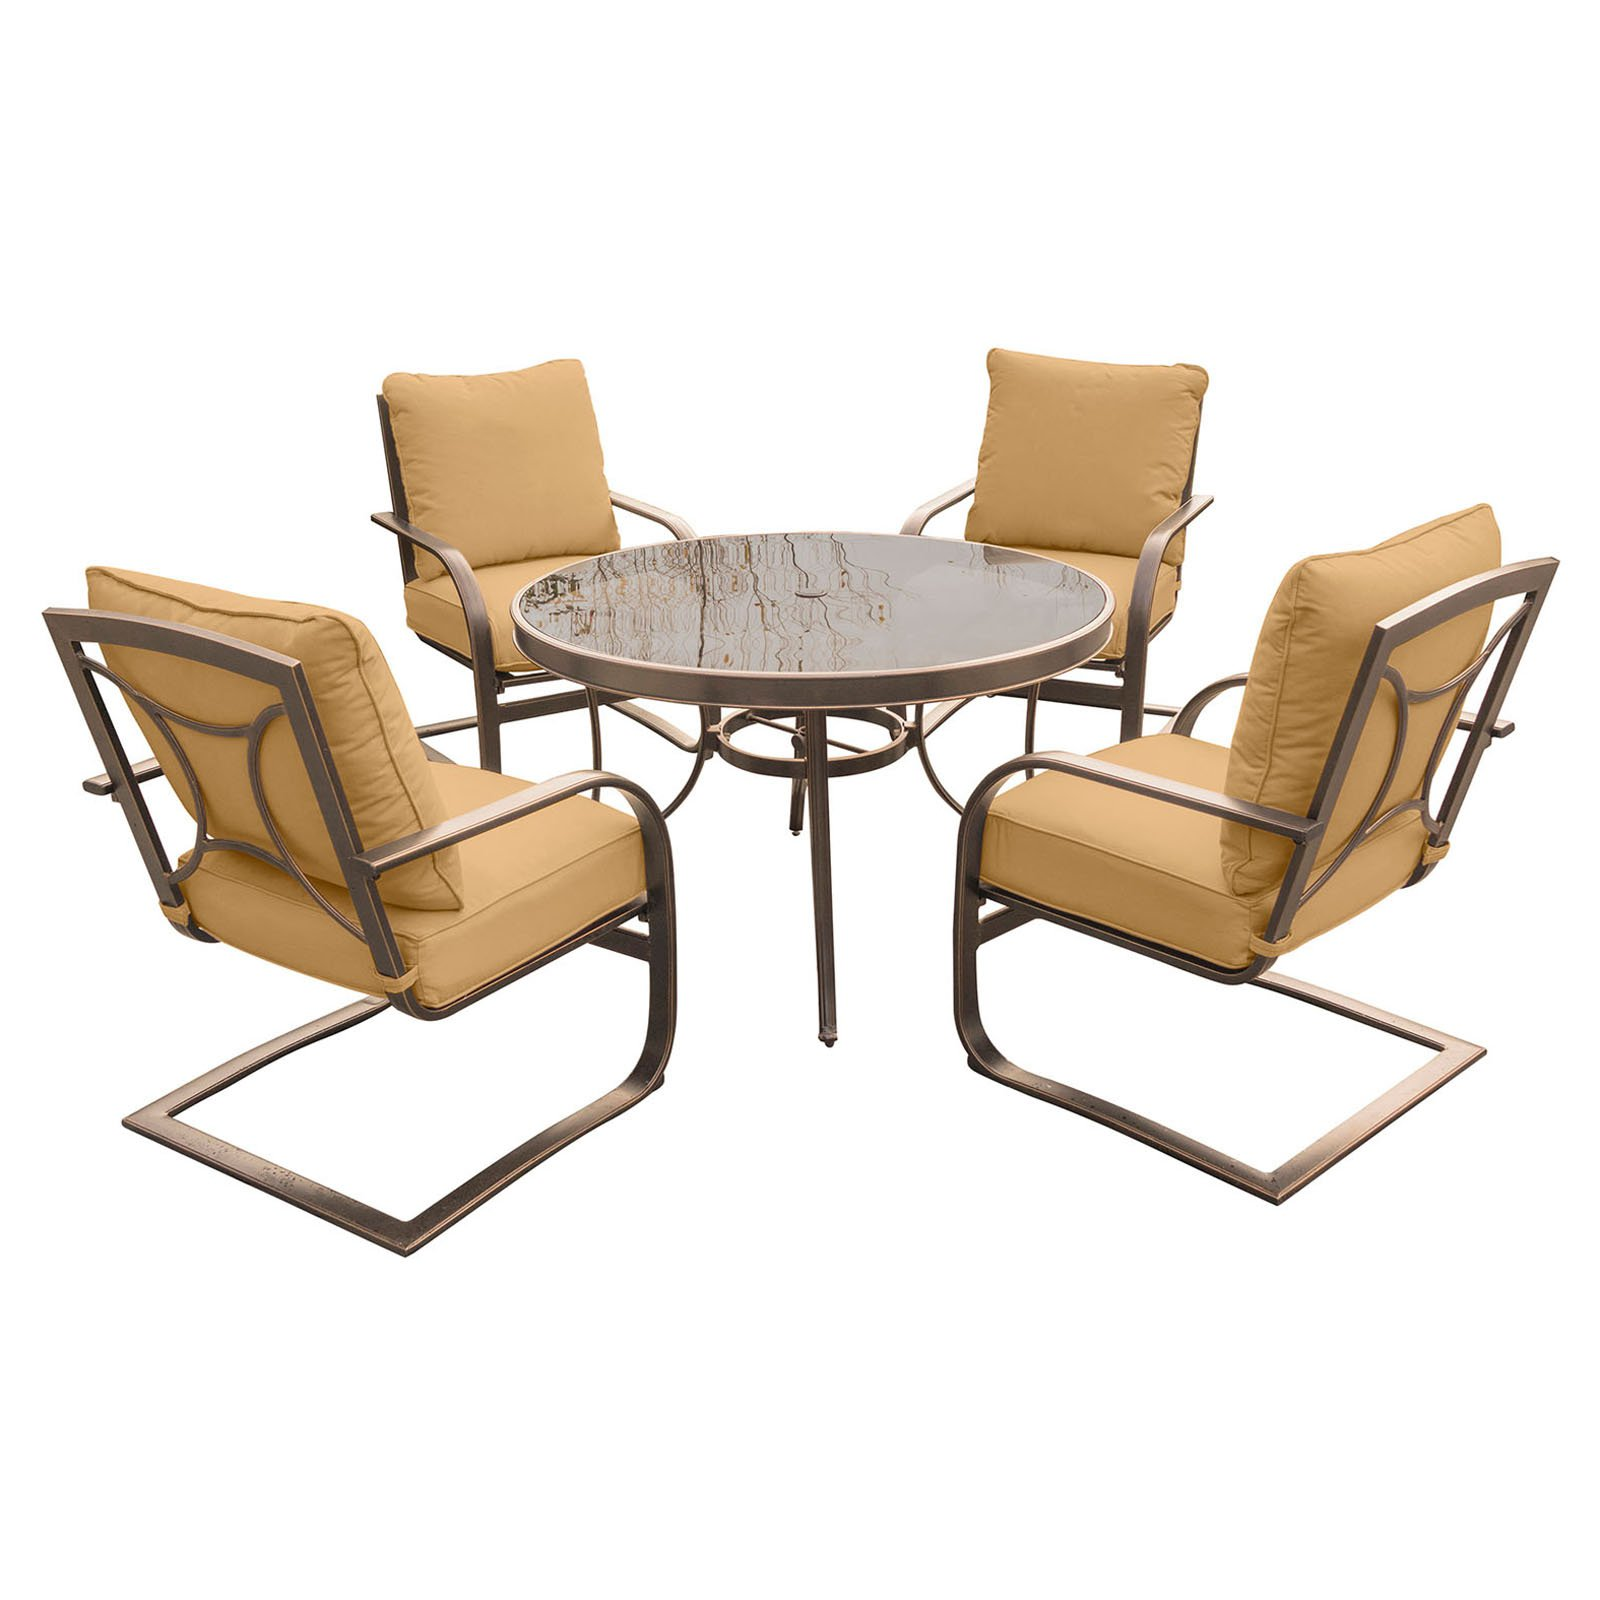 Hanover Outdoor Summer Nights 5-Piece Chat Set with Glass-Top Table and C-Spring Chairs, Desert Sunset